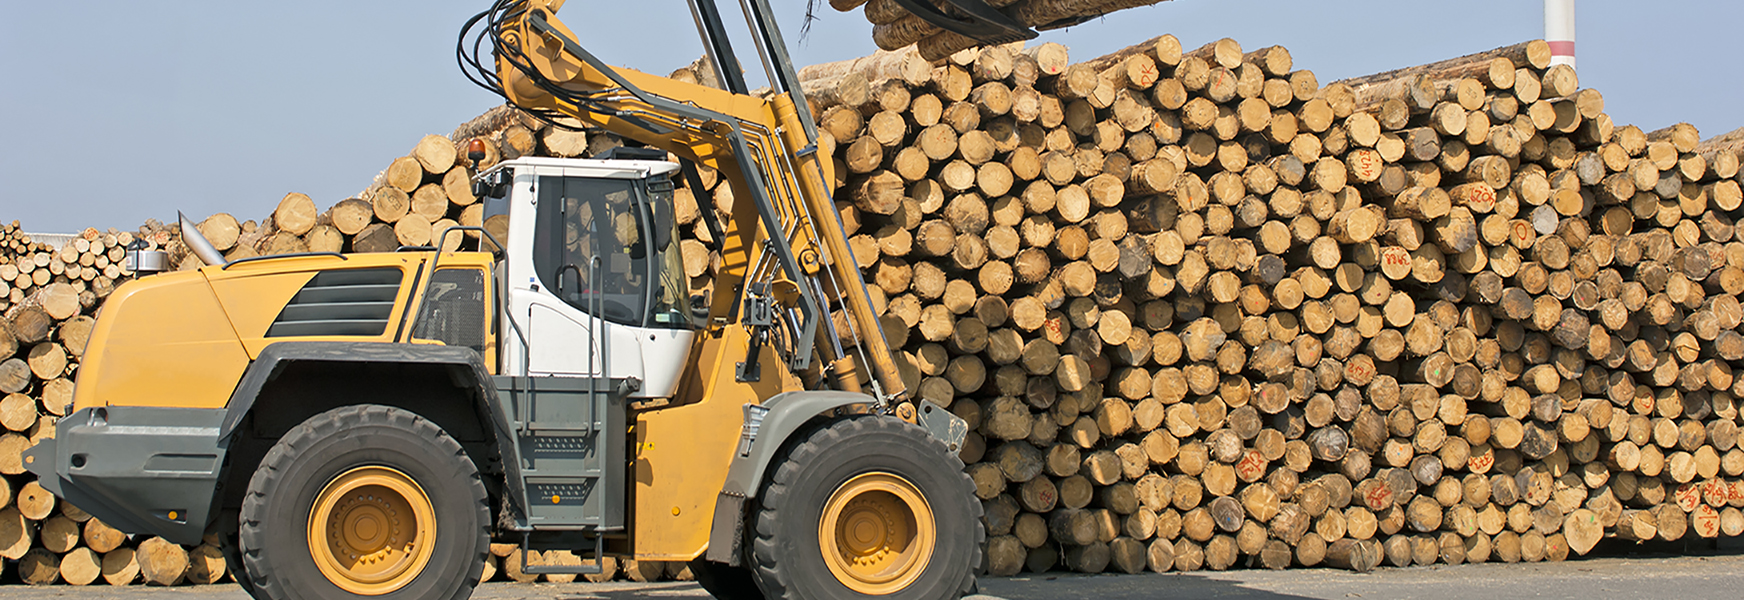 Logging machine in front of log pile